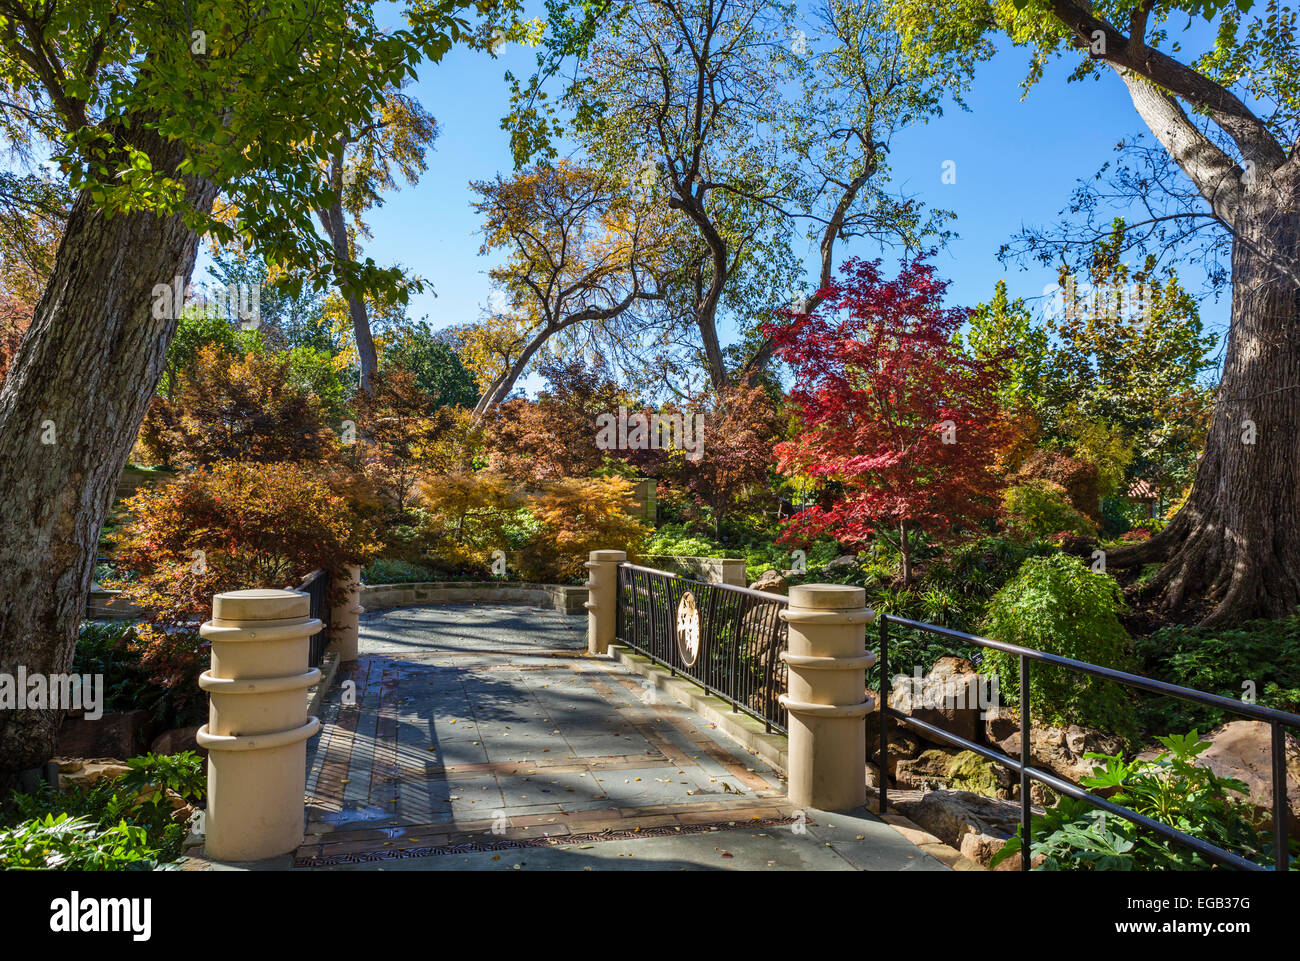 Dallas Arboretum and Botanical Garden in the fall, Texas, USA - Stock Image